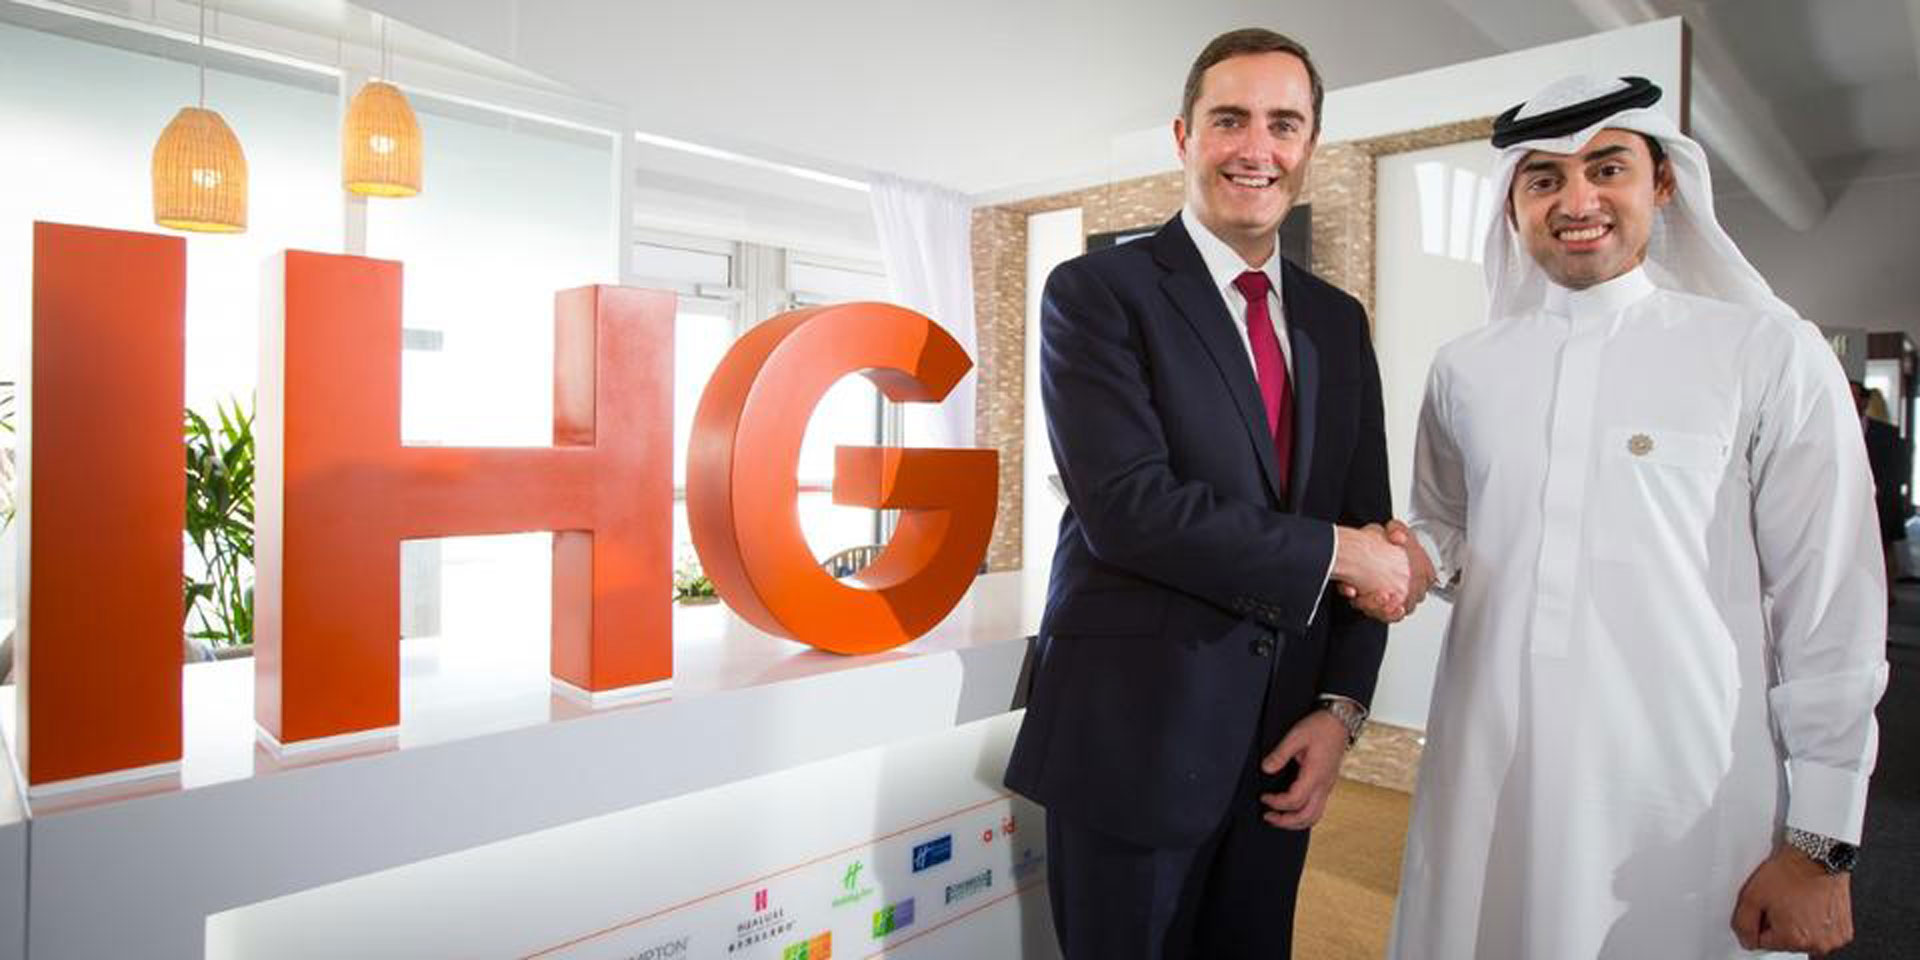 Al Hokair Group signs an exclusive agreement with IHG to bring Holiday Inn Express to Saudi Arabia